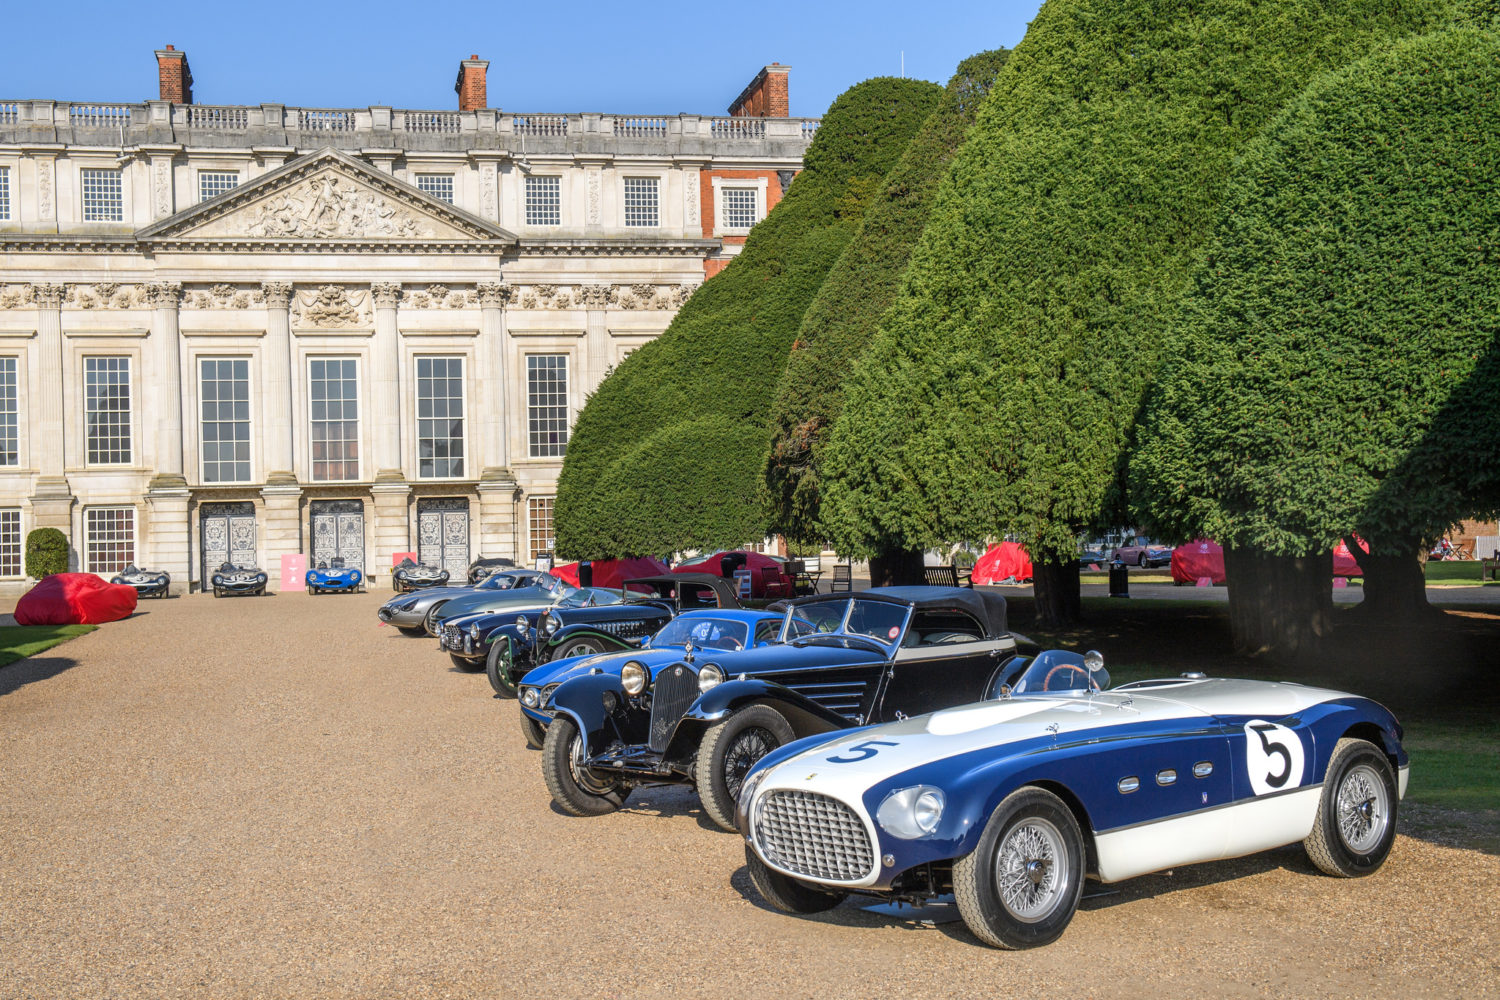 Concours of Elegance: The Winners